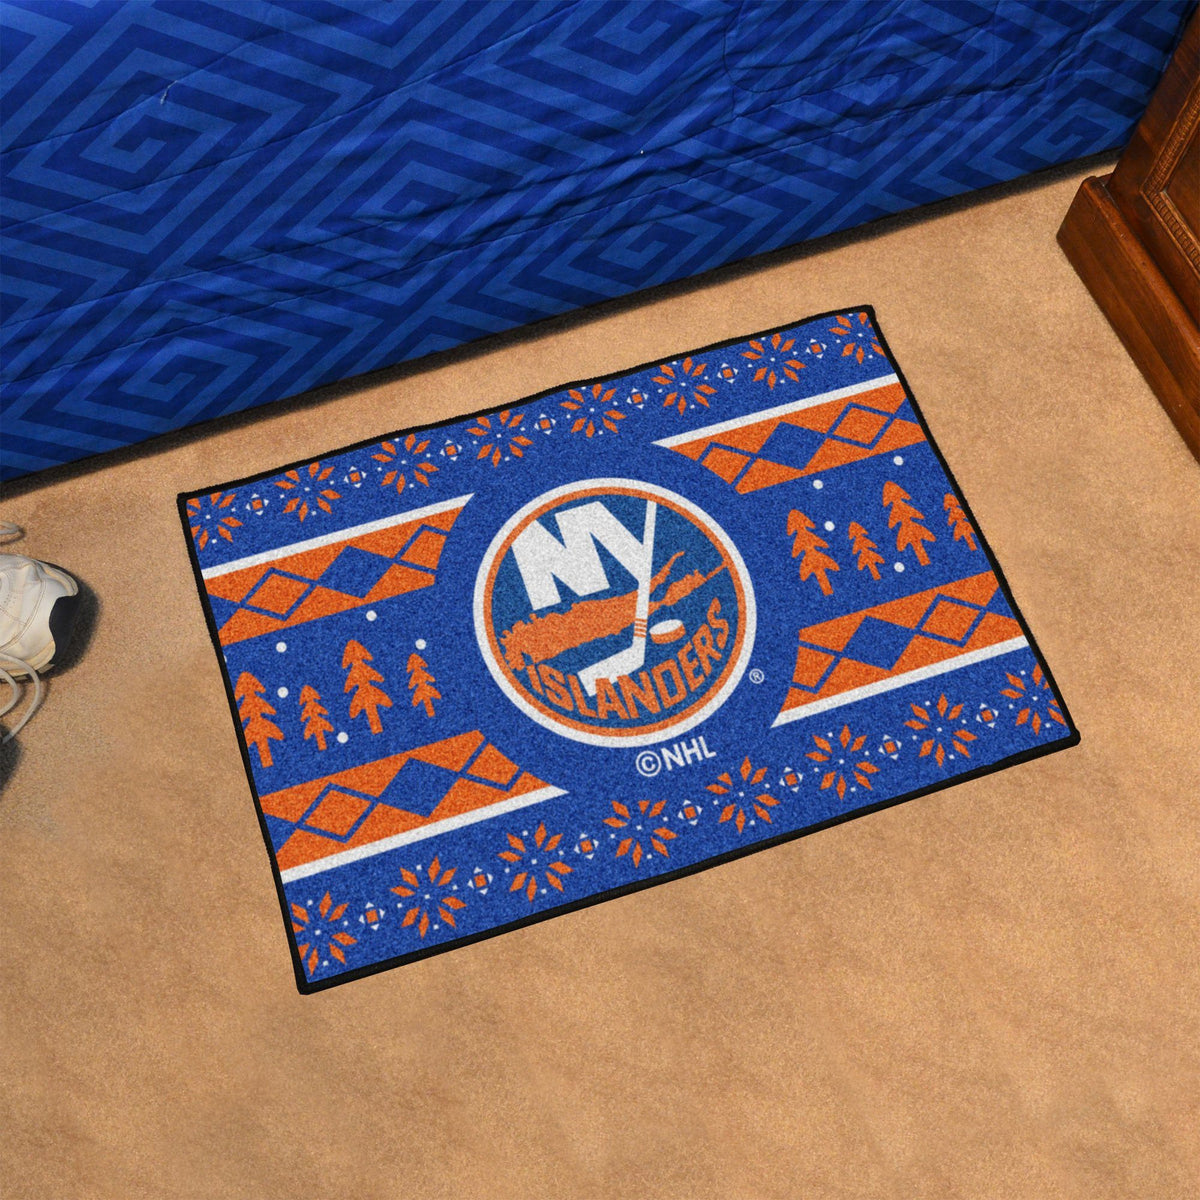 NHL - Holiday Sweater Starter Mat NHL Mats, Rectangular Mats, Holiday Sweater Starter Mat, NHL, Home Fan Mats New York Islanders